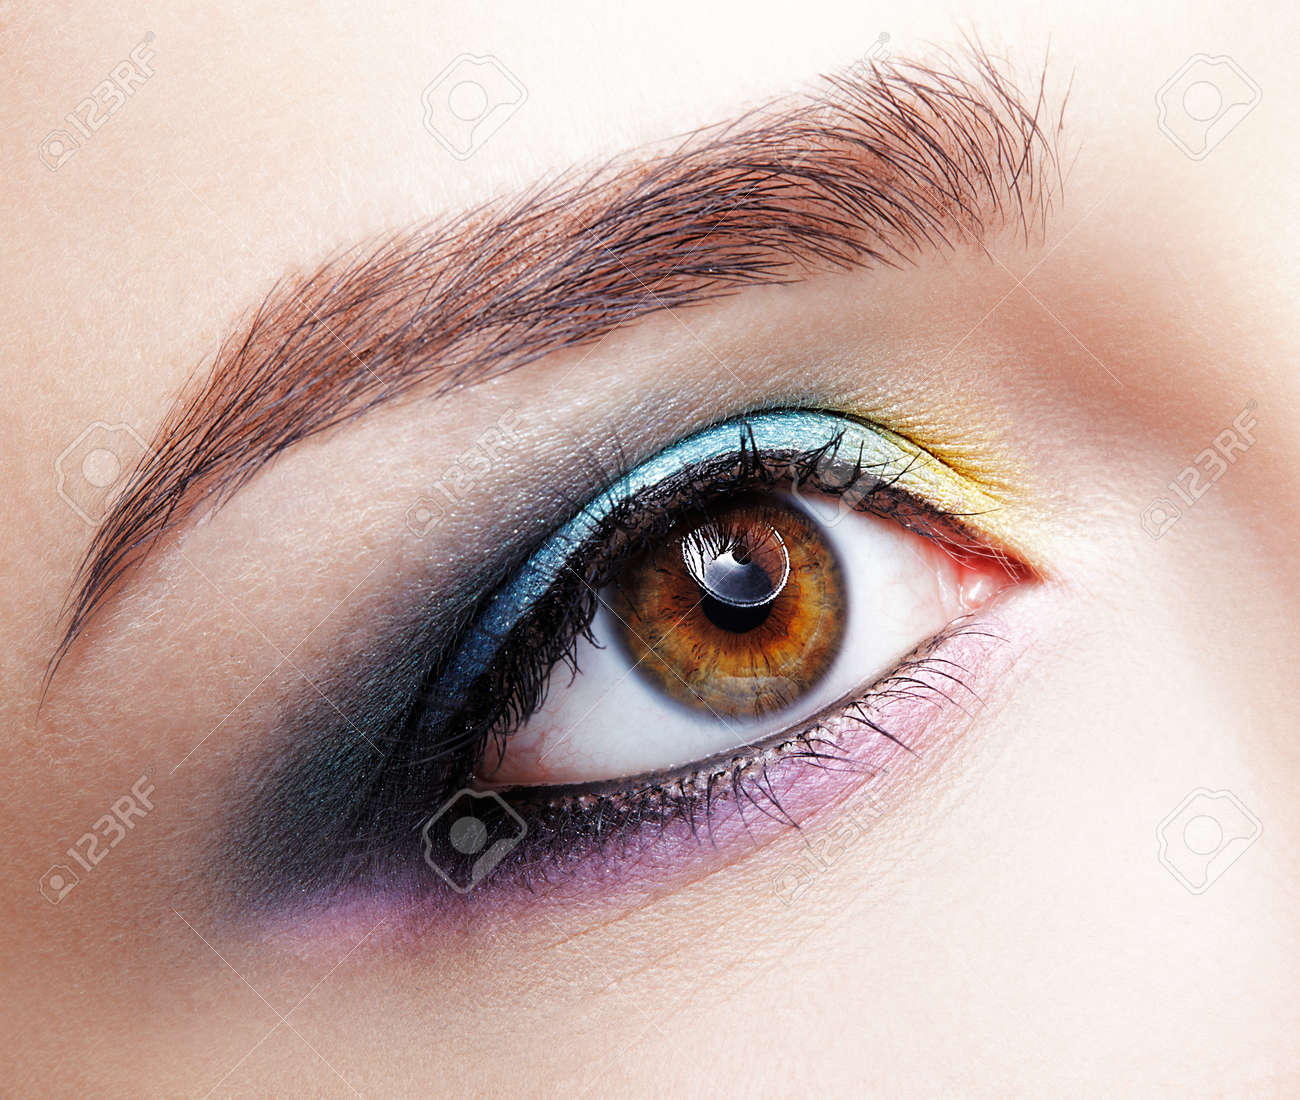 Yellow Natural eyes human pictures forecast dress in everyday in 2019